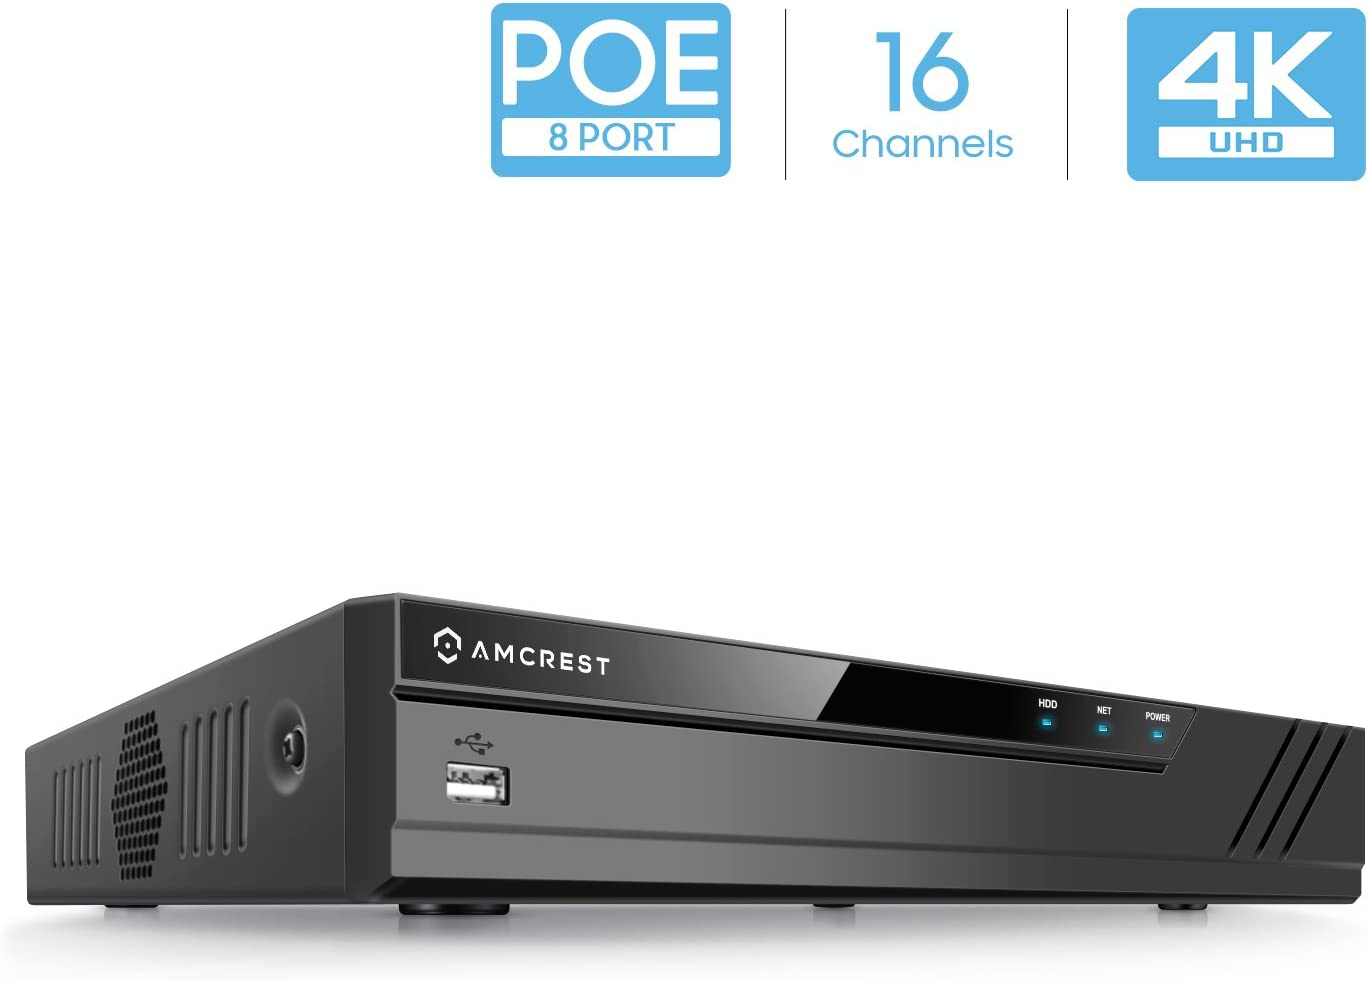 Amcrest NV4116E-HS (16CH 720p/1080p/3MP/4MP/5MP/6MP/8MP/4K) Network Video Recorder, 16CH (8-Port PoE) NVR - Supports up to 16 x 4K IP Cameras, Hard Drive Not Included (Supports up to 6TB) NV4116E-HS